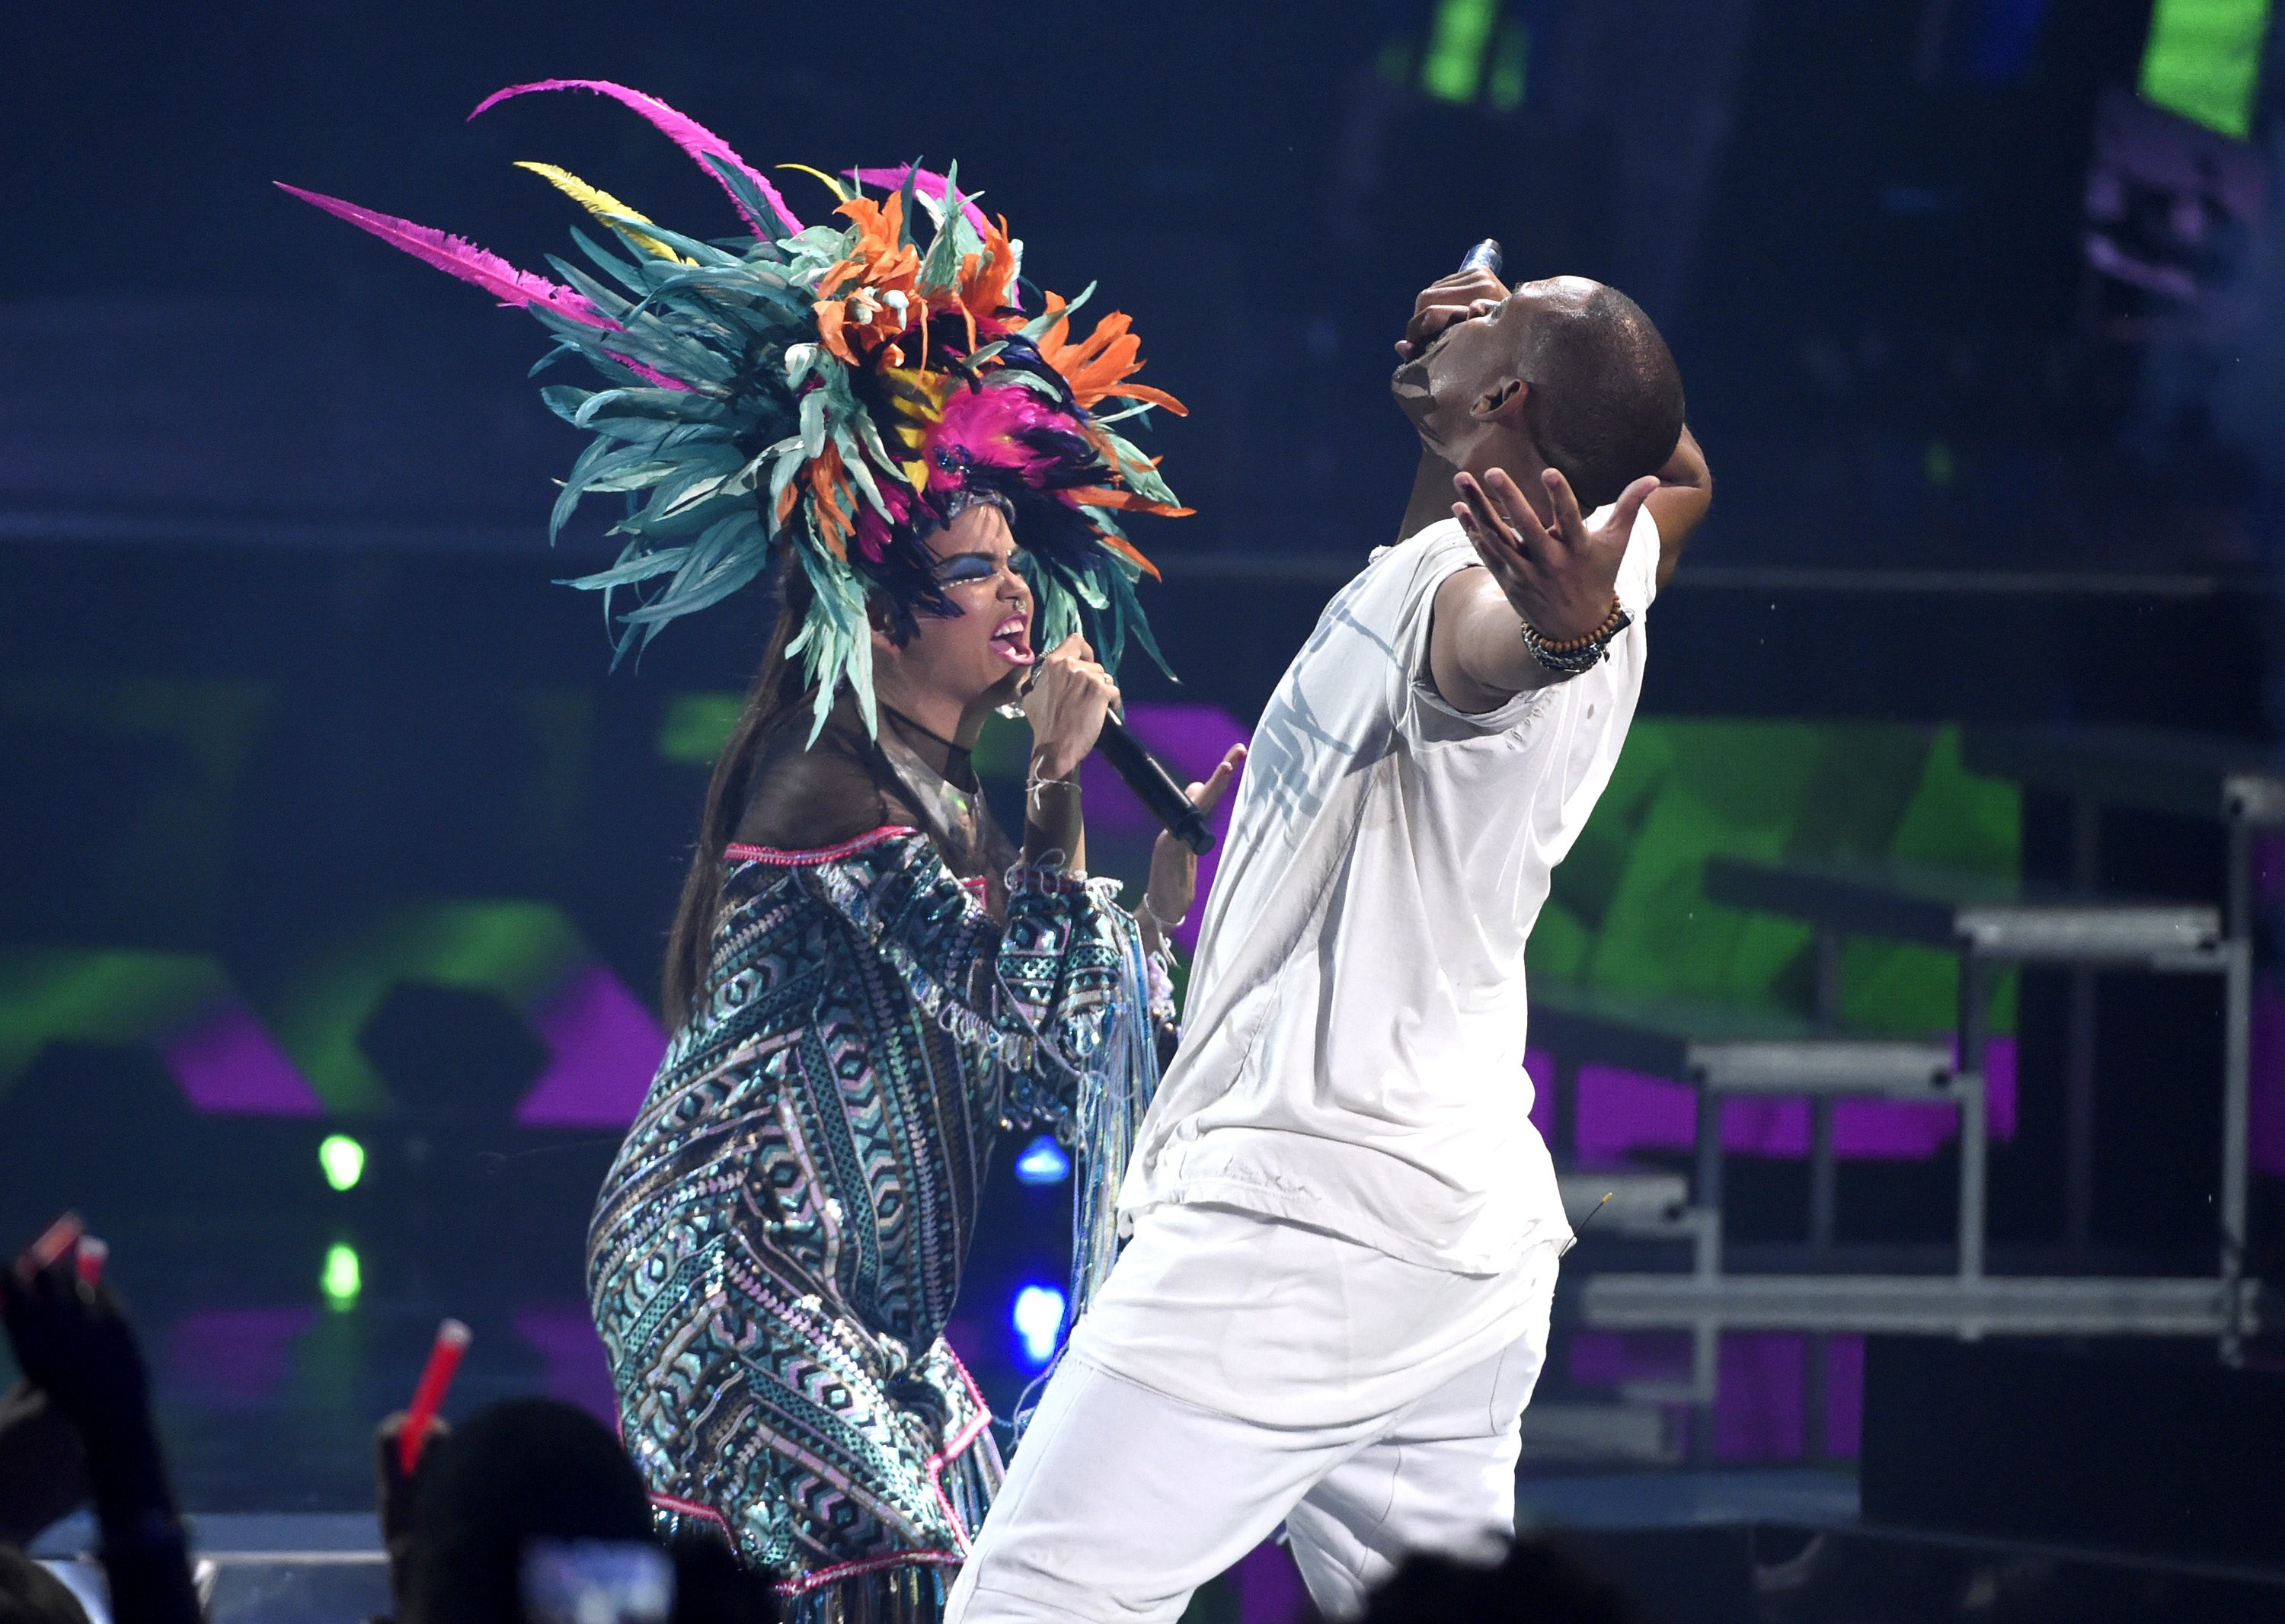 "Liliana Saumet, of Bomba Estereo, and Will Smith perform ""Fiesta"" at the 16th annual Latin Grammy Awards at the MGM Grand Garden Arena on Thursday, Nov. 19, 2015, in Las Vegas. (Photo by Chris Pizzello/Invision/AP)"